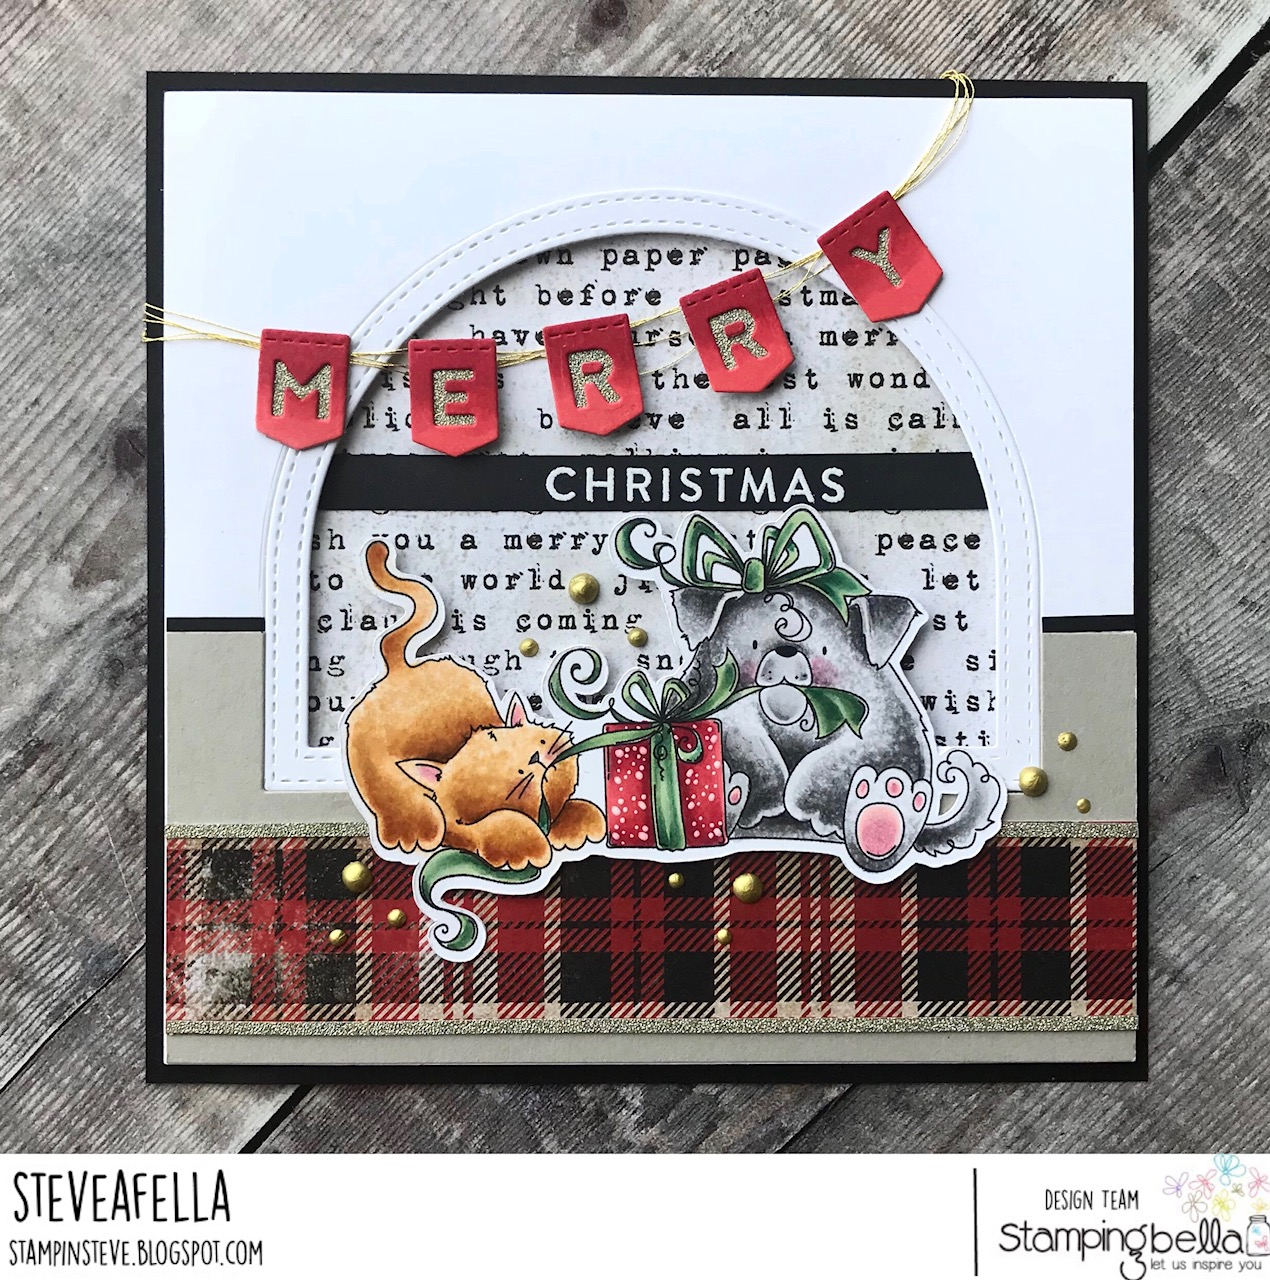 www.stampingbella.com: Rubber stamp used: CHRISTMAS TUG OF WAR, card by Stephen Kropf